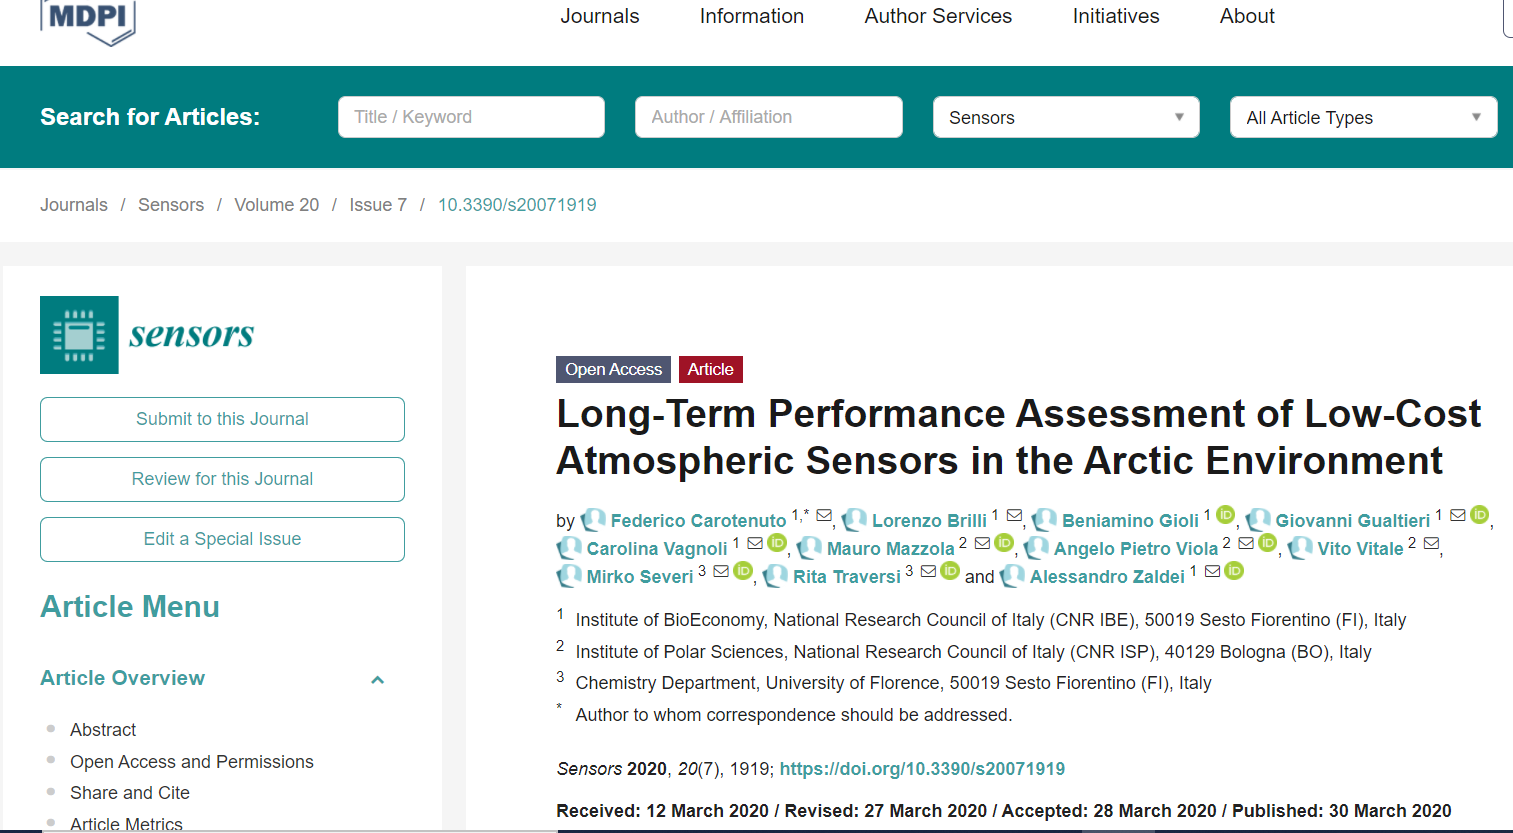 Long-Term Performance Assessment of Low-Cost Atmospheric Sensors in the Arctic Environment